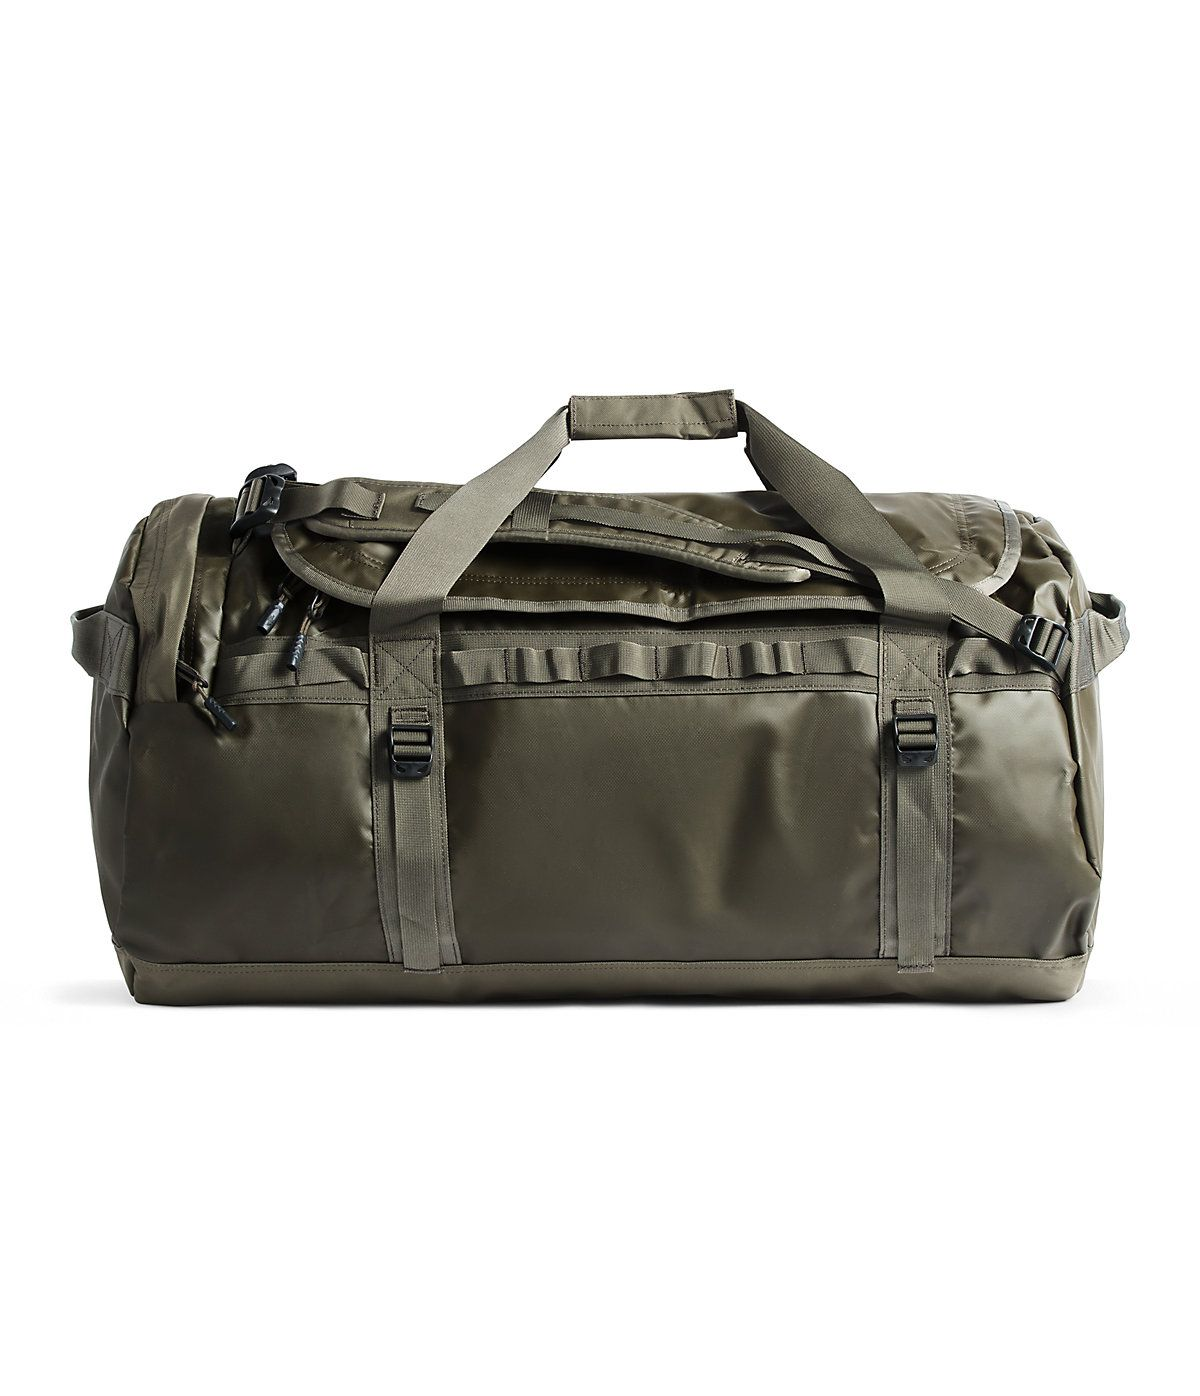 The North Face Base Camp Large Duffel Bag Updated Design ec2500d2ba9be